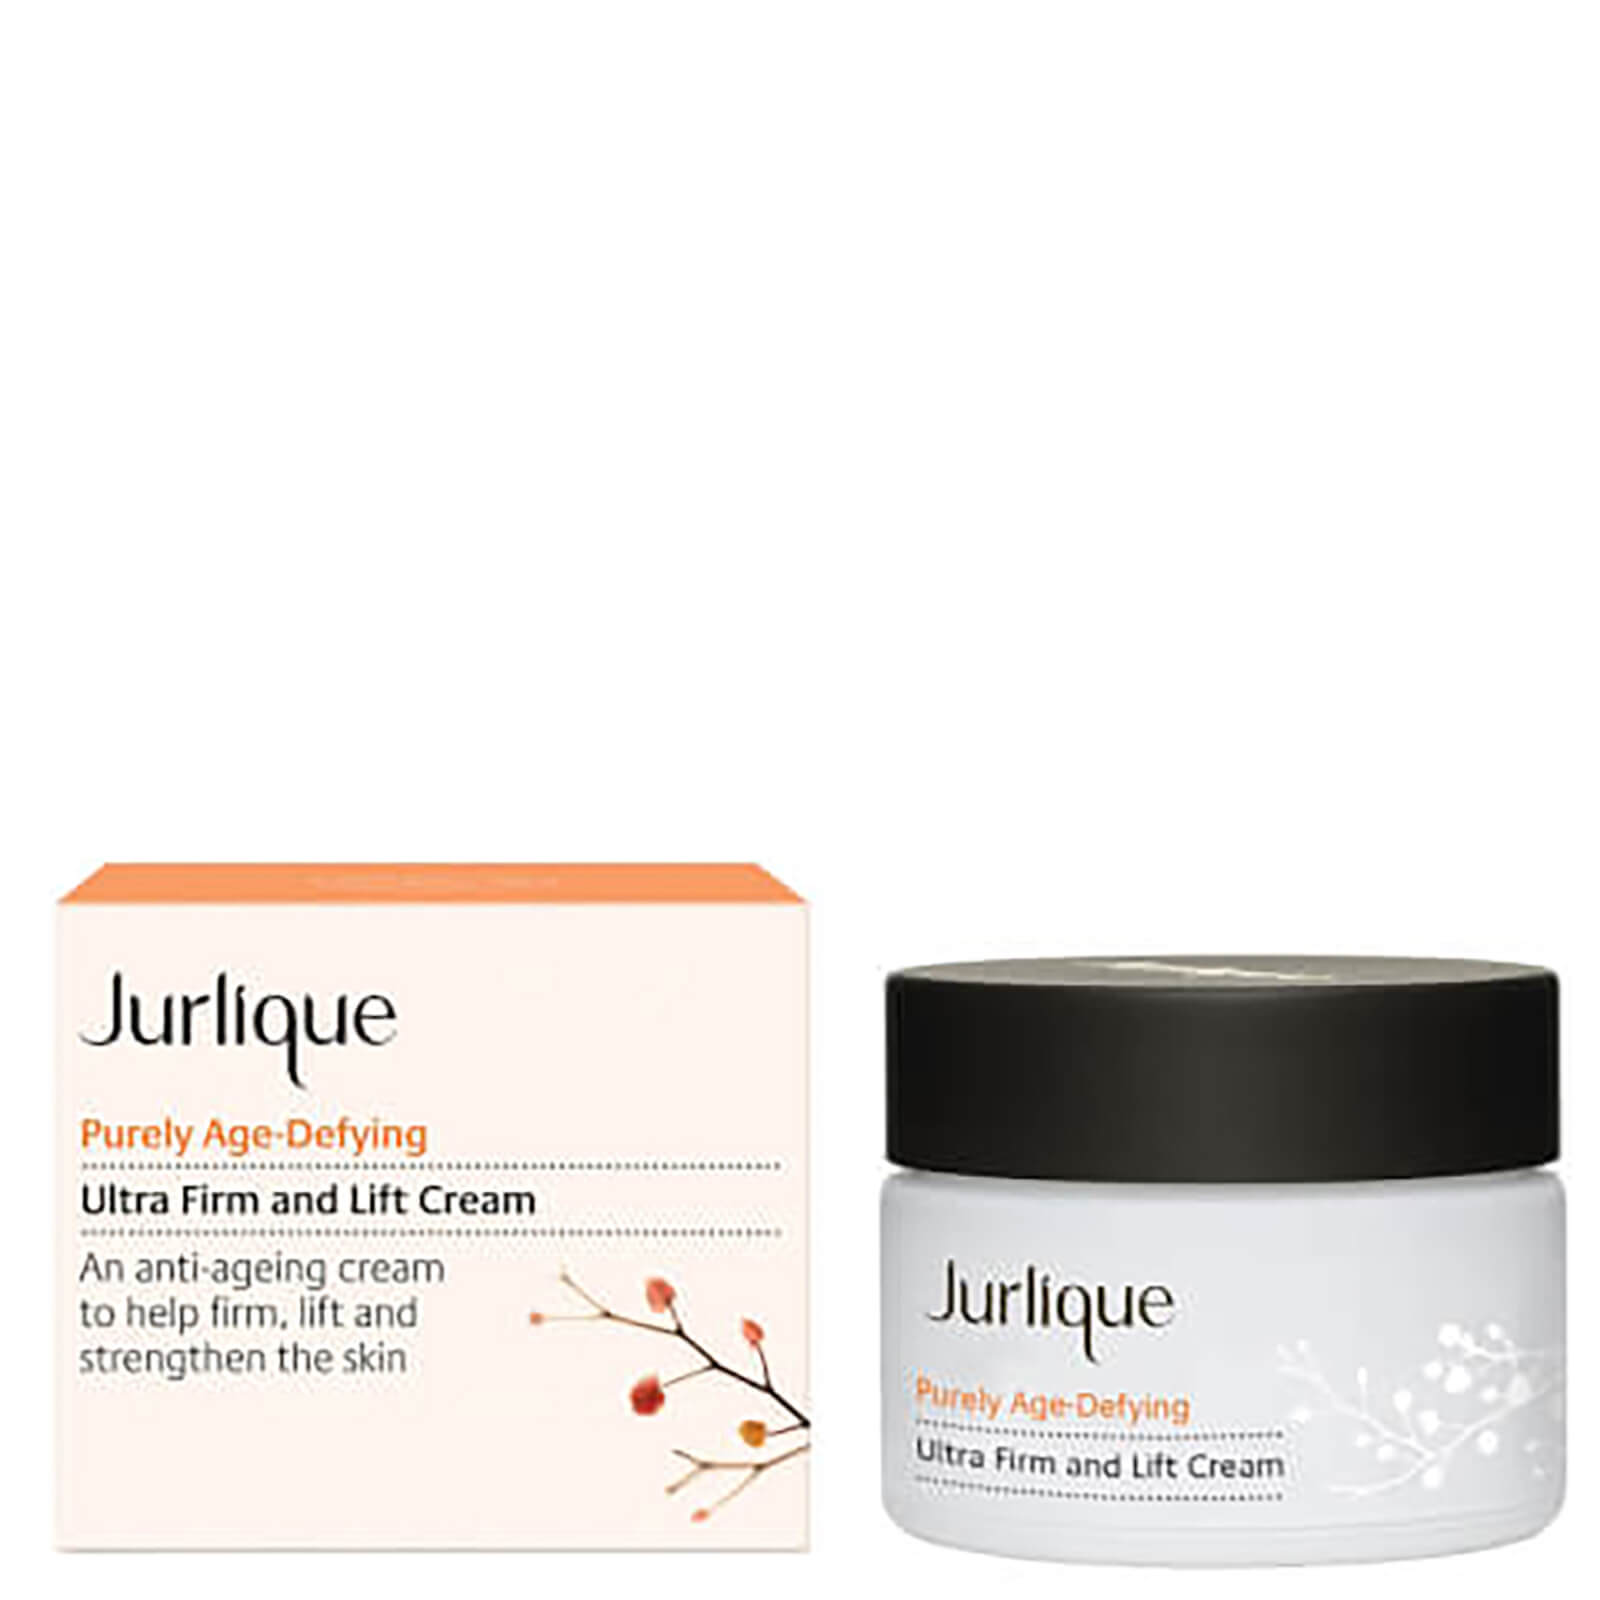 How to Apply Your Jurlique Moisturiser